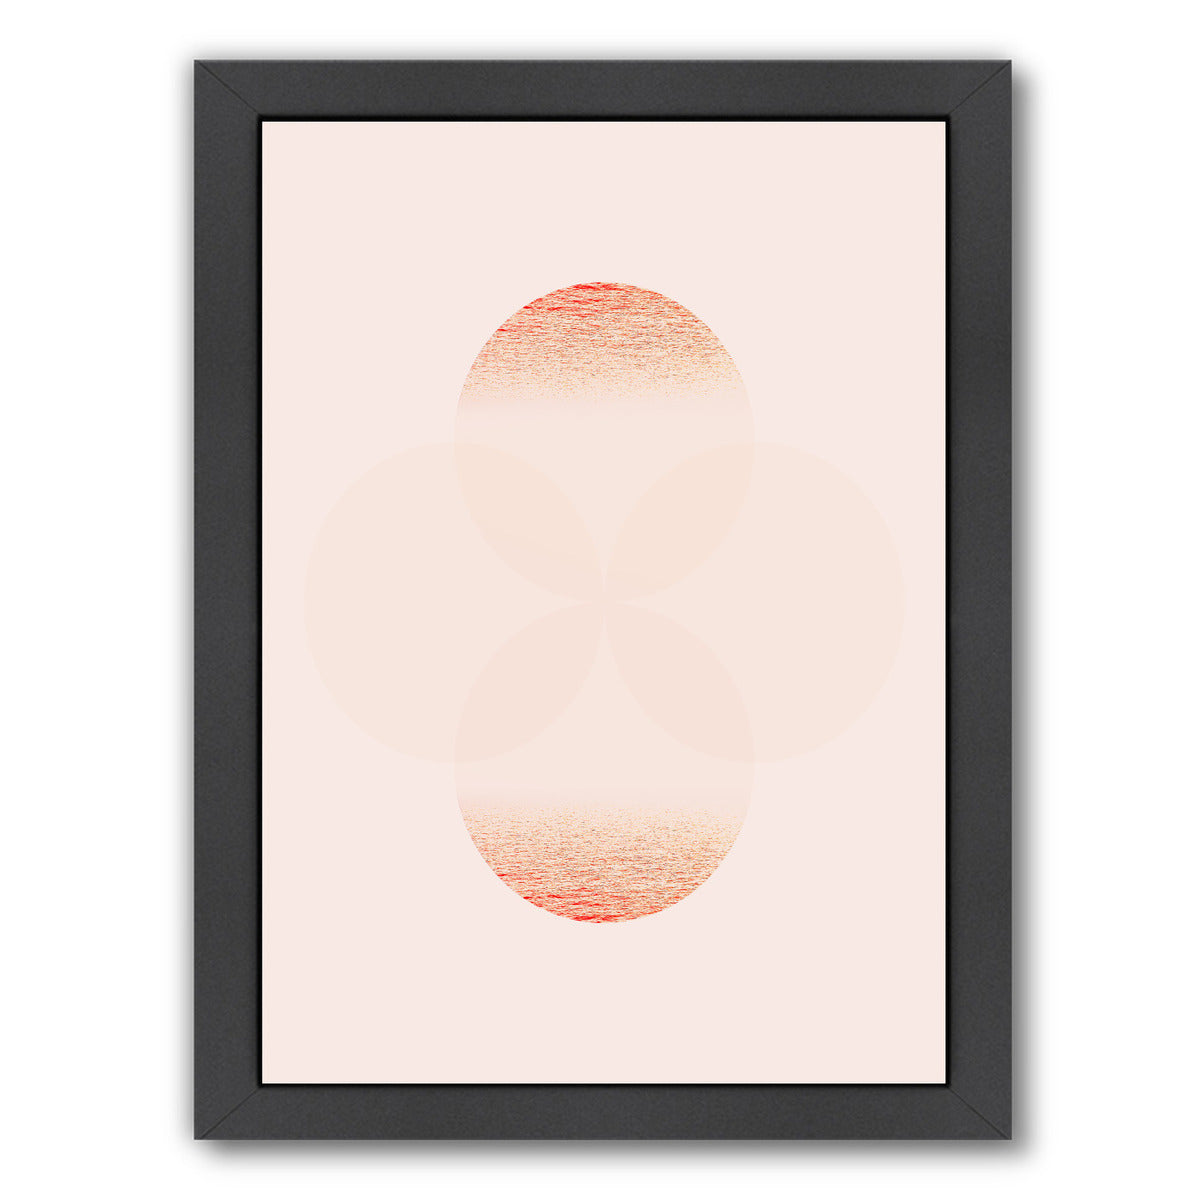 Lunar Blush I by Hope Bainbridge - Black Framed Print - Wall Art - Americanflat